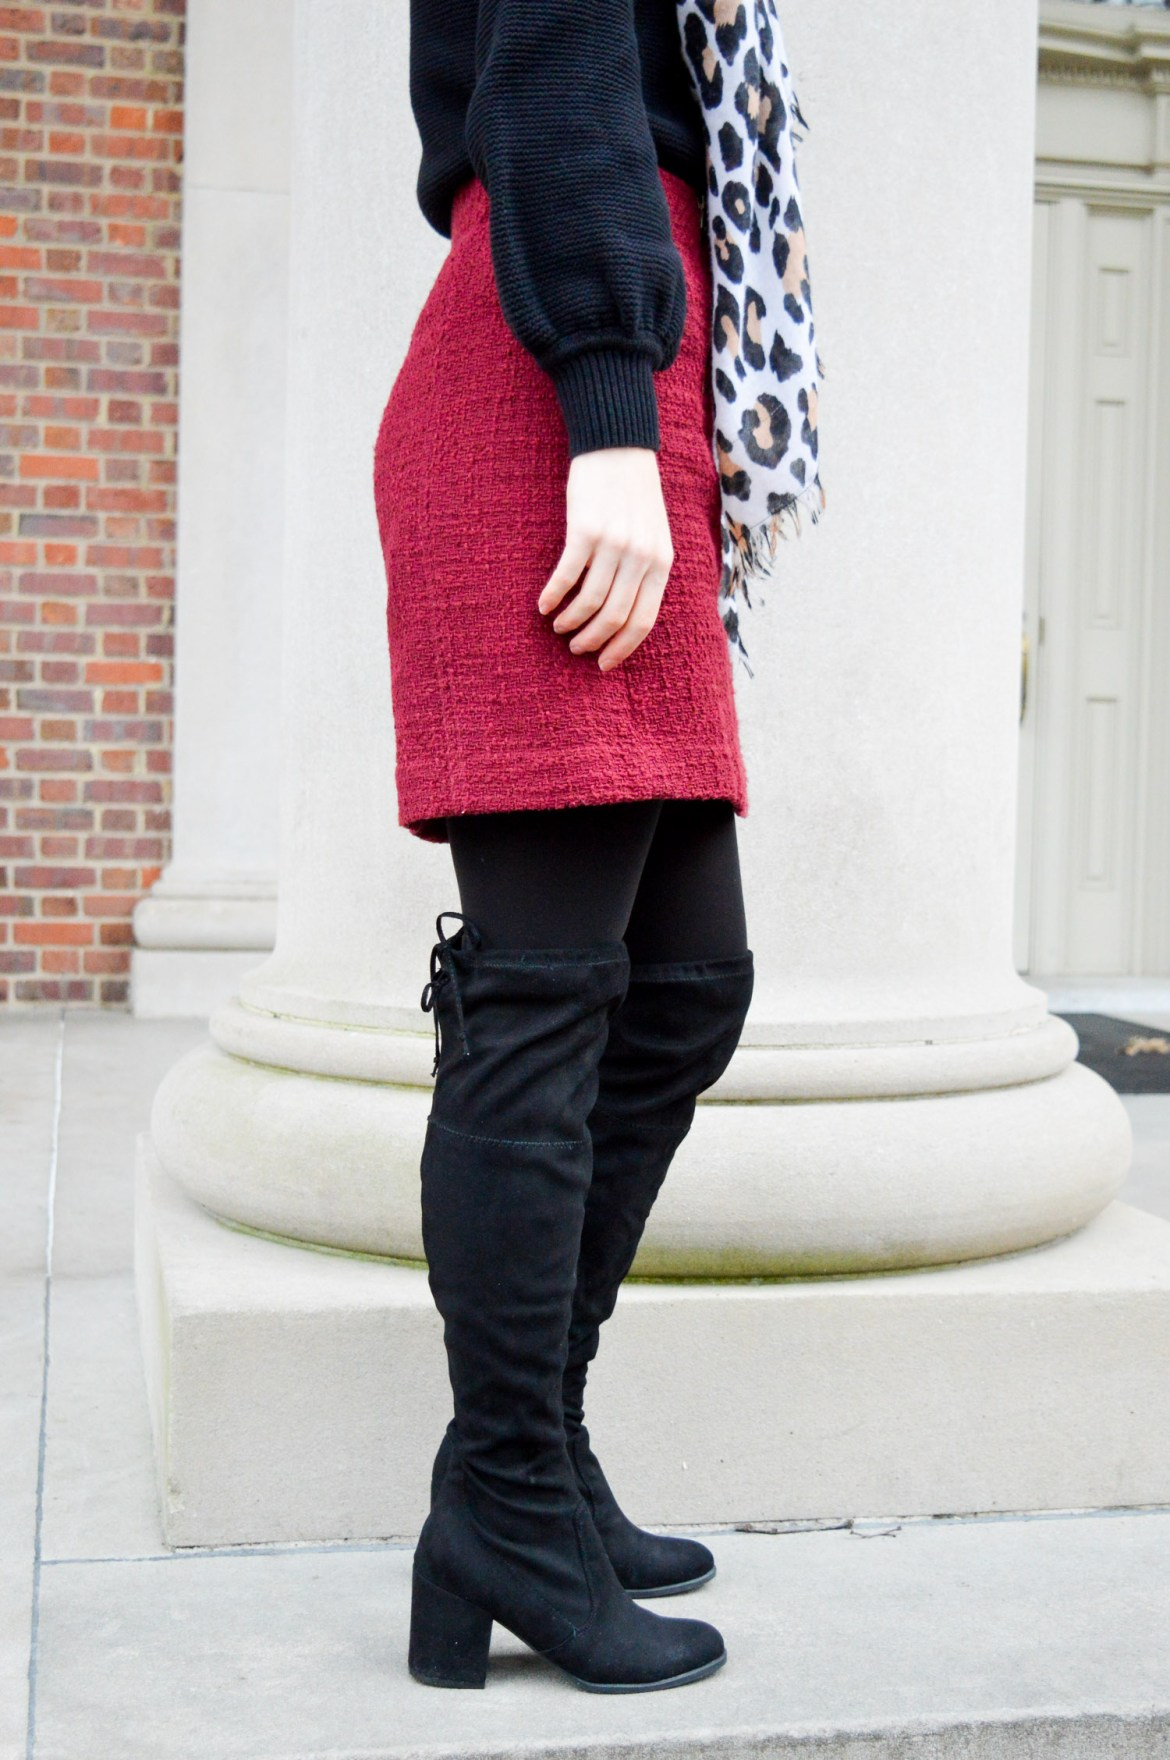 Winter Outfits // Black base with colorful skirt and scarf